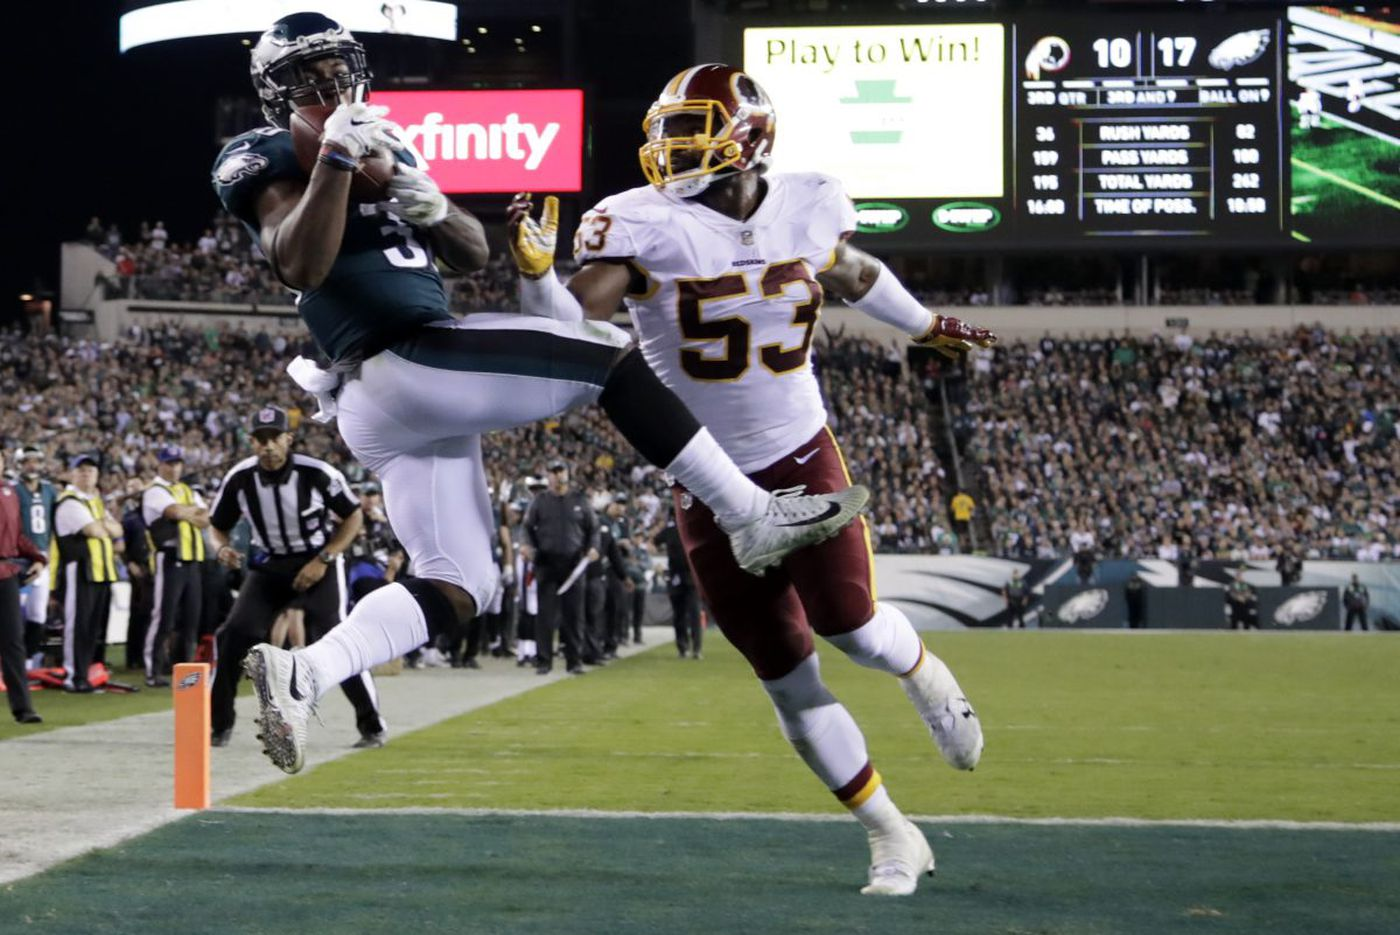 Eagles' use of Jay Ajayi unlikely to lessen Corey Clement's role